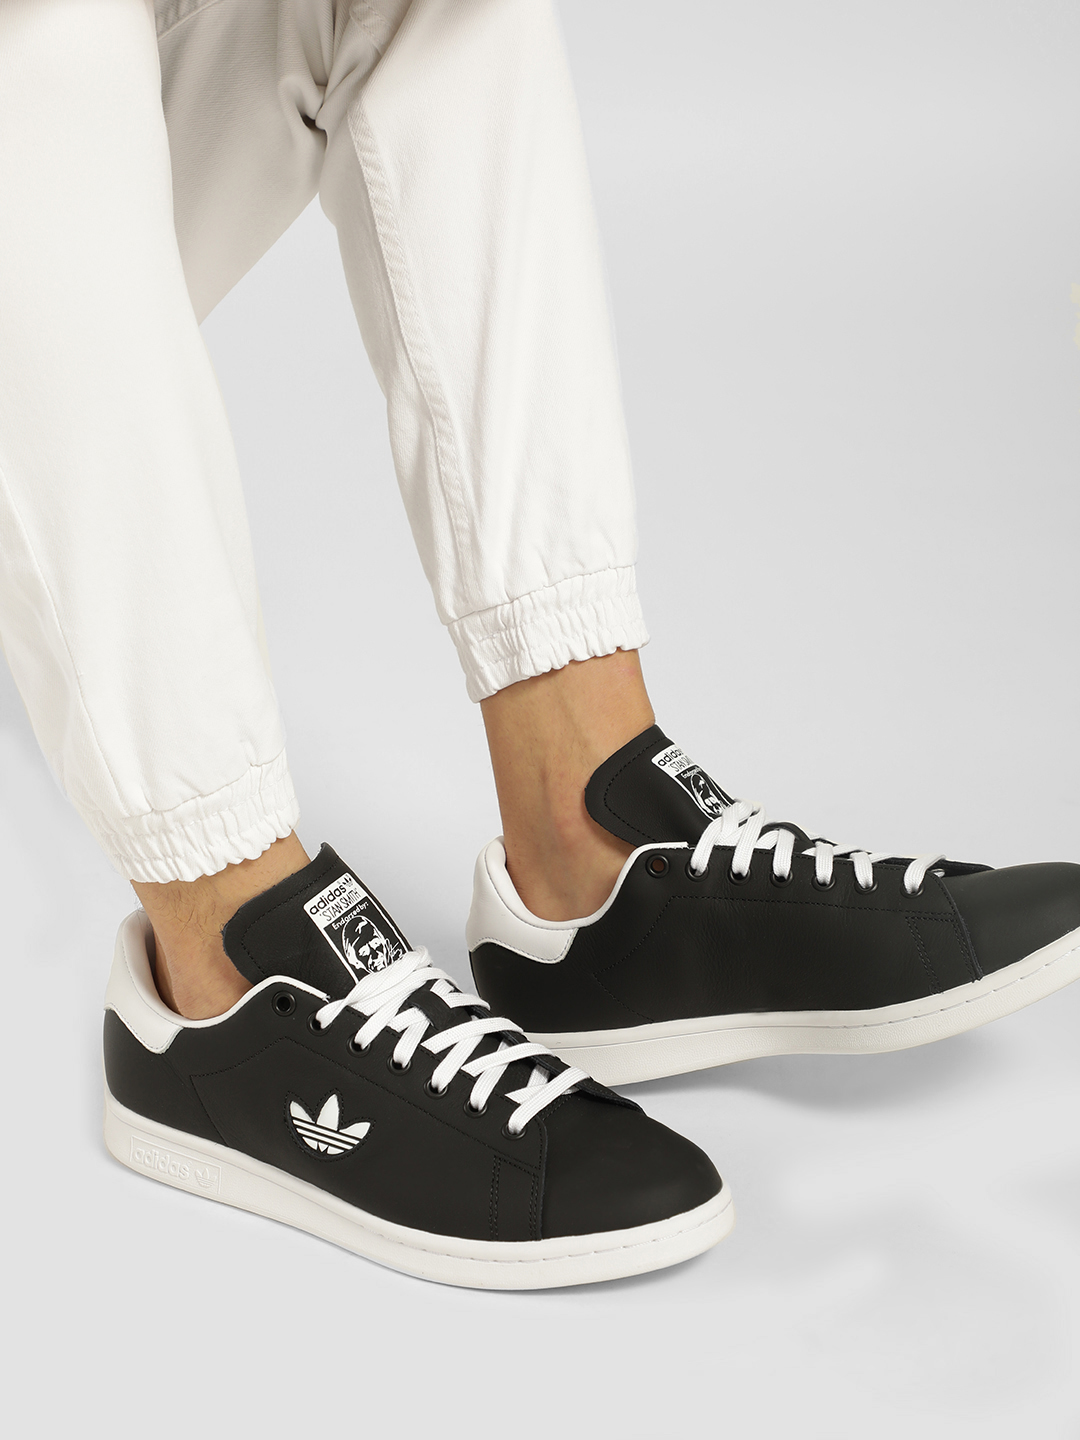 Adidas Originals Black Stan Smith Shoes 1